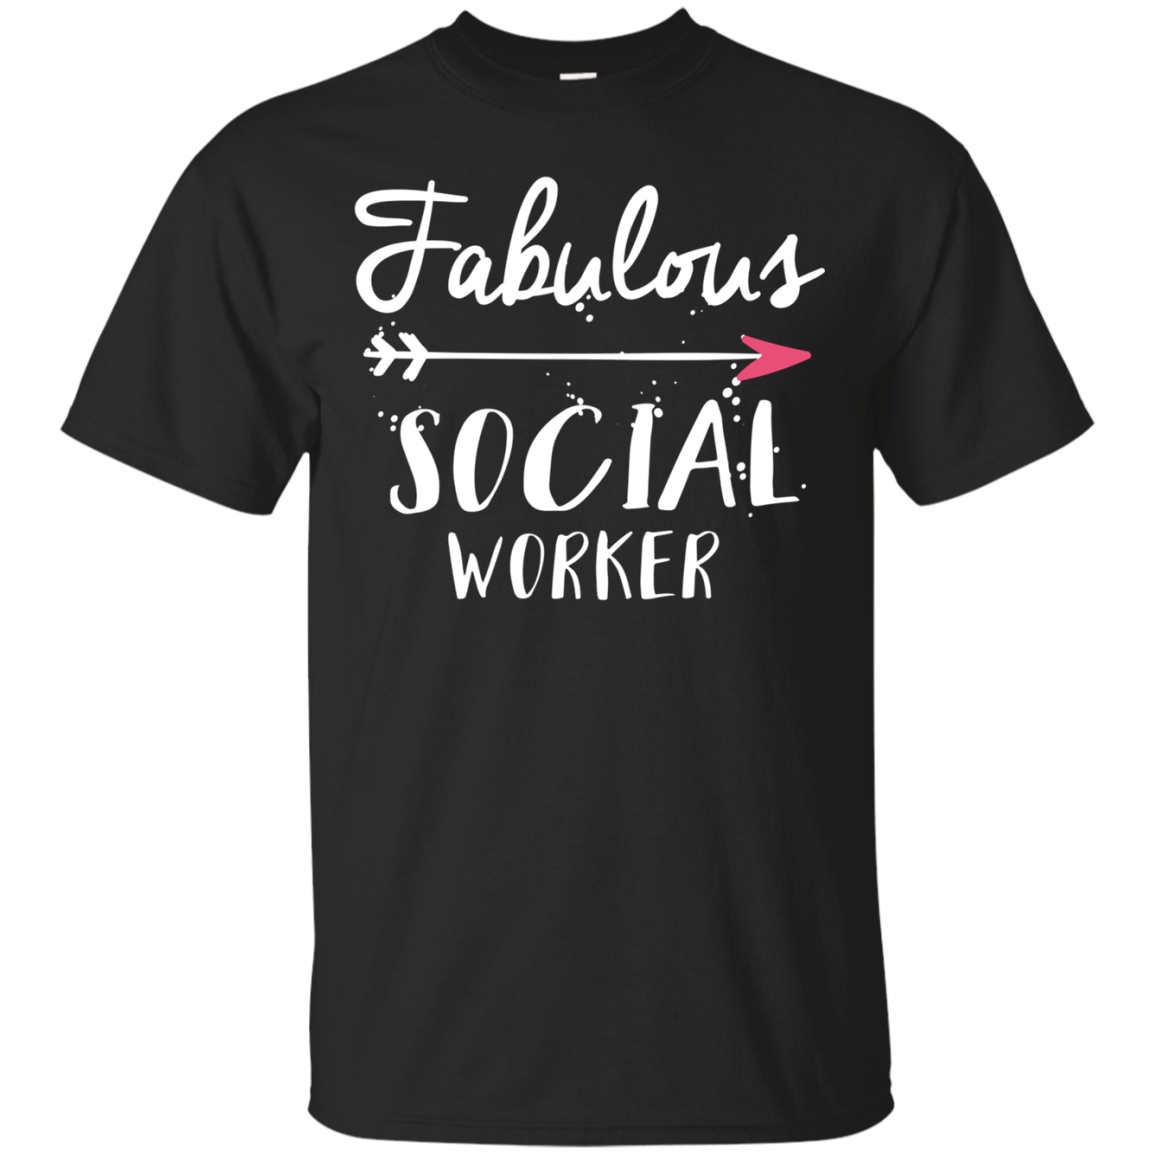 Social Worker Birthday Party Gifts Shirts for Women